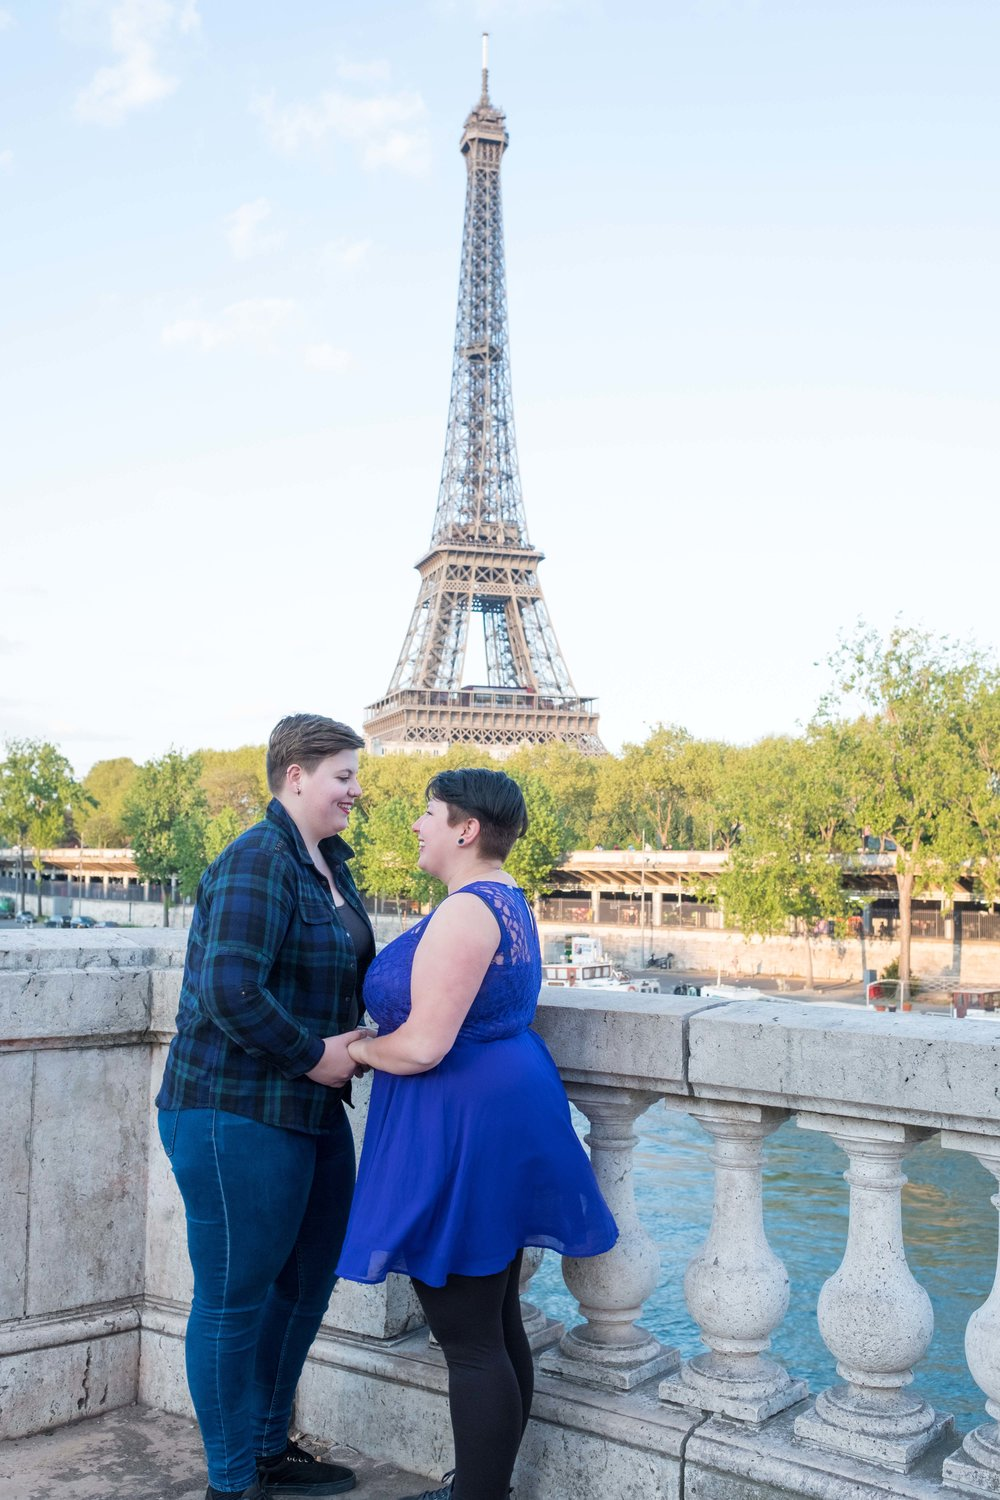 Same sex marriage proposal at Eiffel Tower in Paris